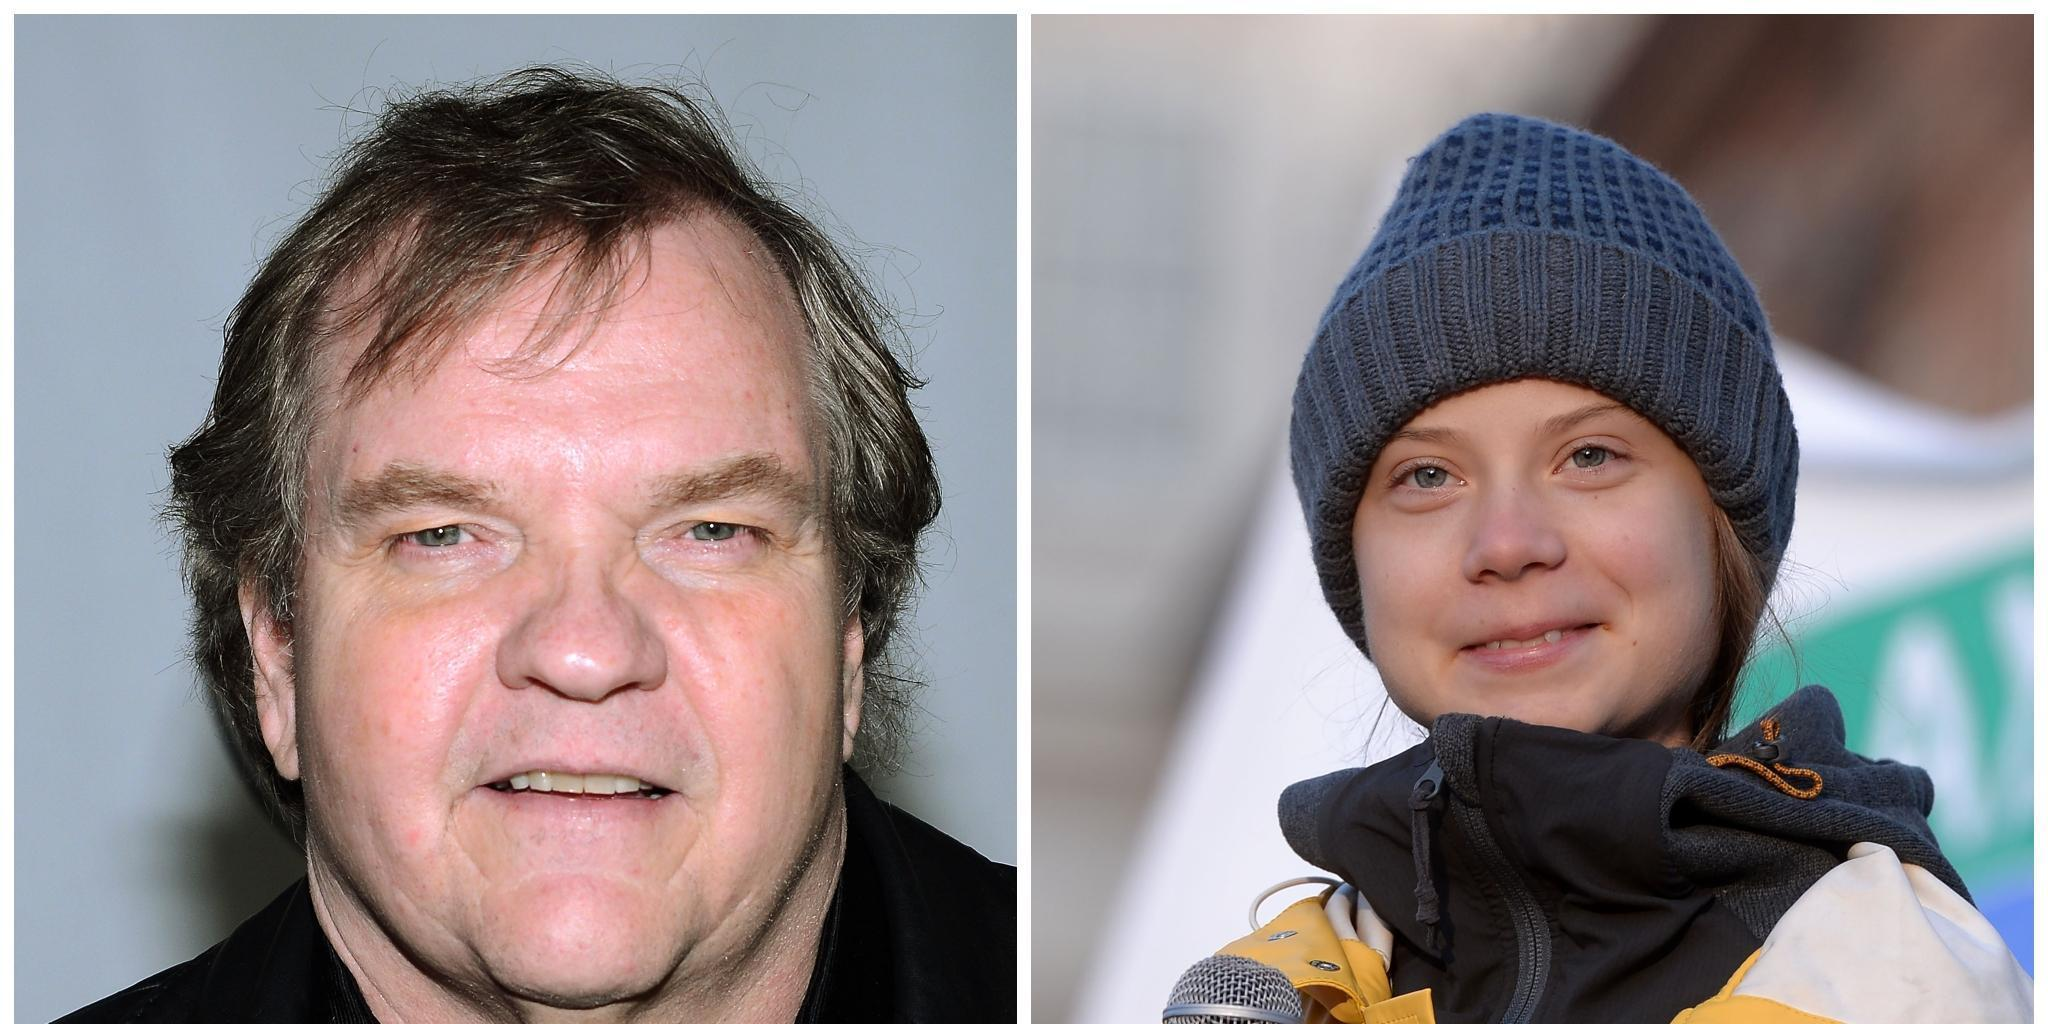 Meat Loaf Says Activist Greta Thunberg Is 'Brainwashed' And Feels Bad For Her - Insists Climate Change Is Not Real And Social Media Slams Him!